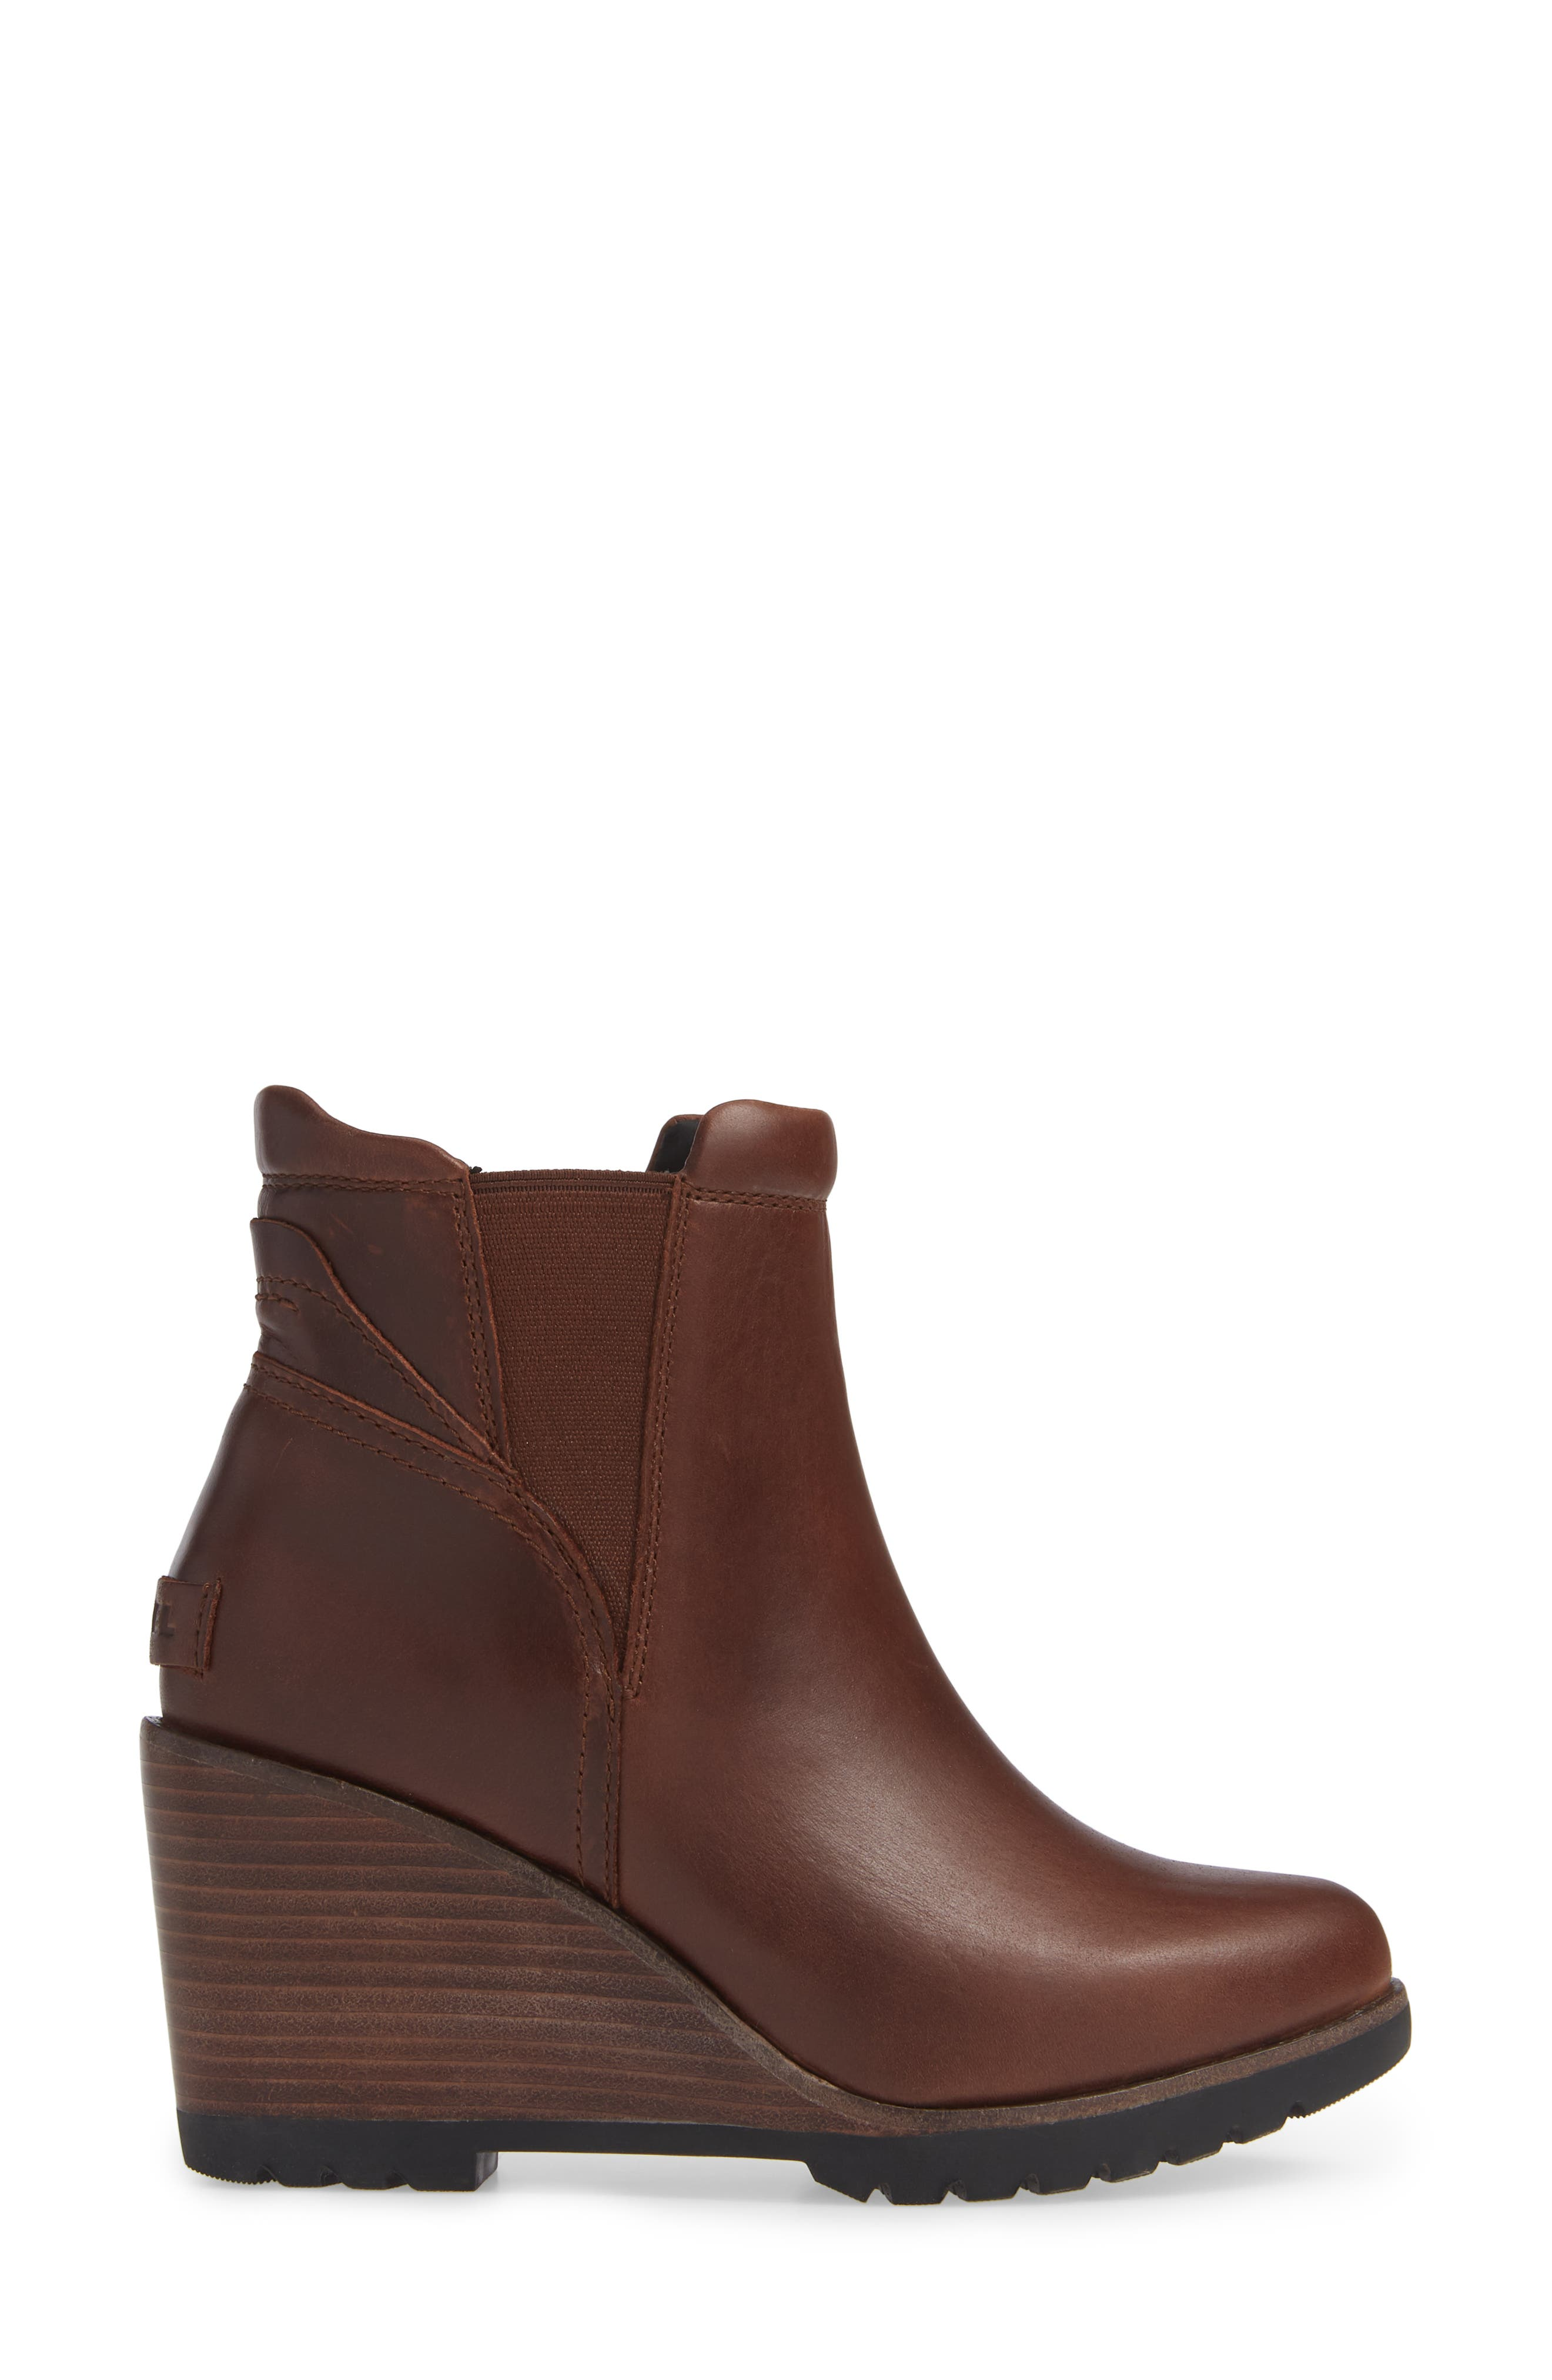 After Hours Chelsea Boot,                             Alternate thumbnail 3, color,                             200